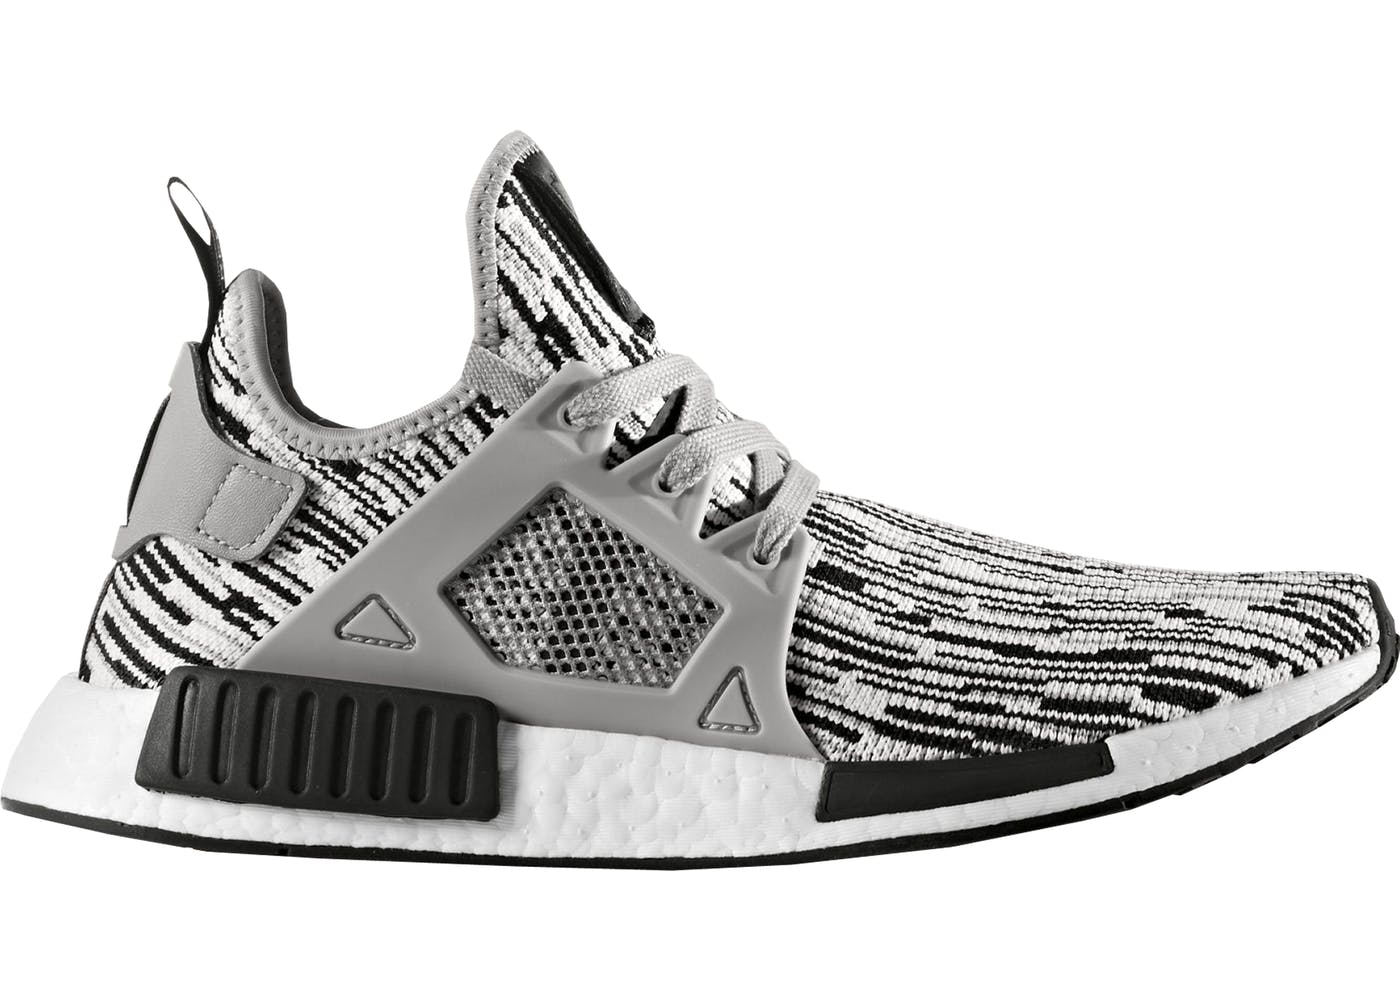 Adidas NMD XR1 Mens (Adidas BY9923), Men's Running Wss